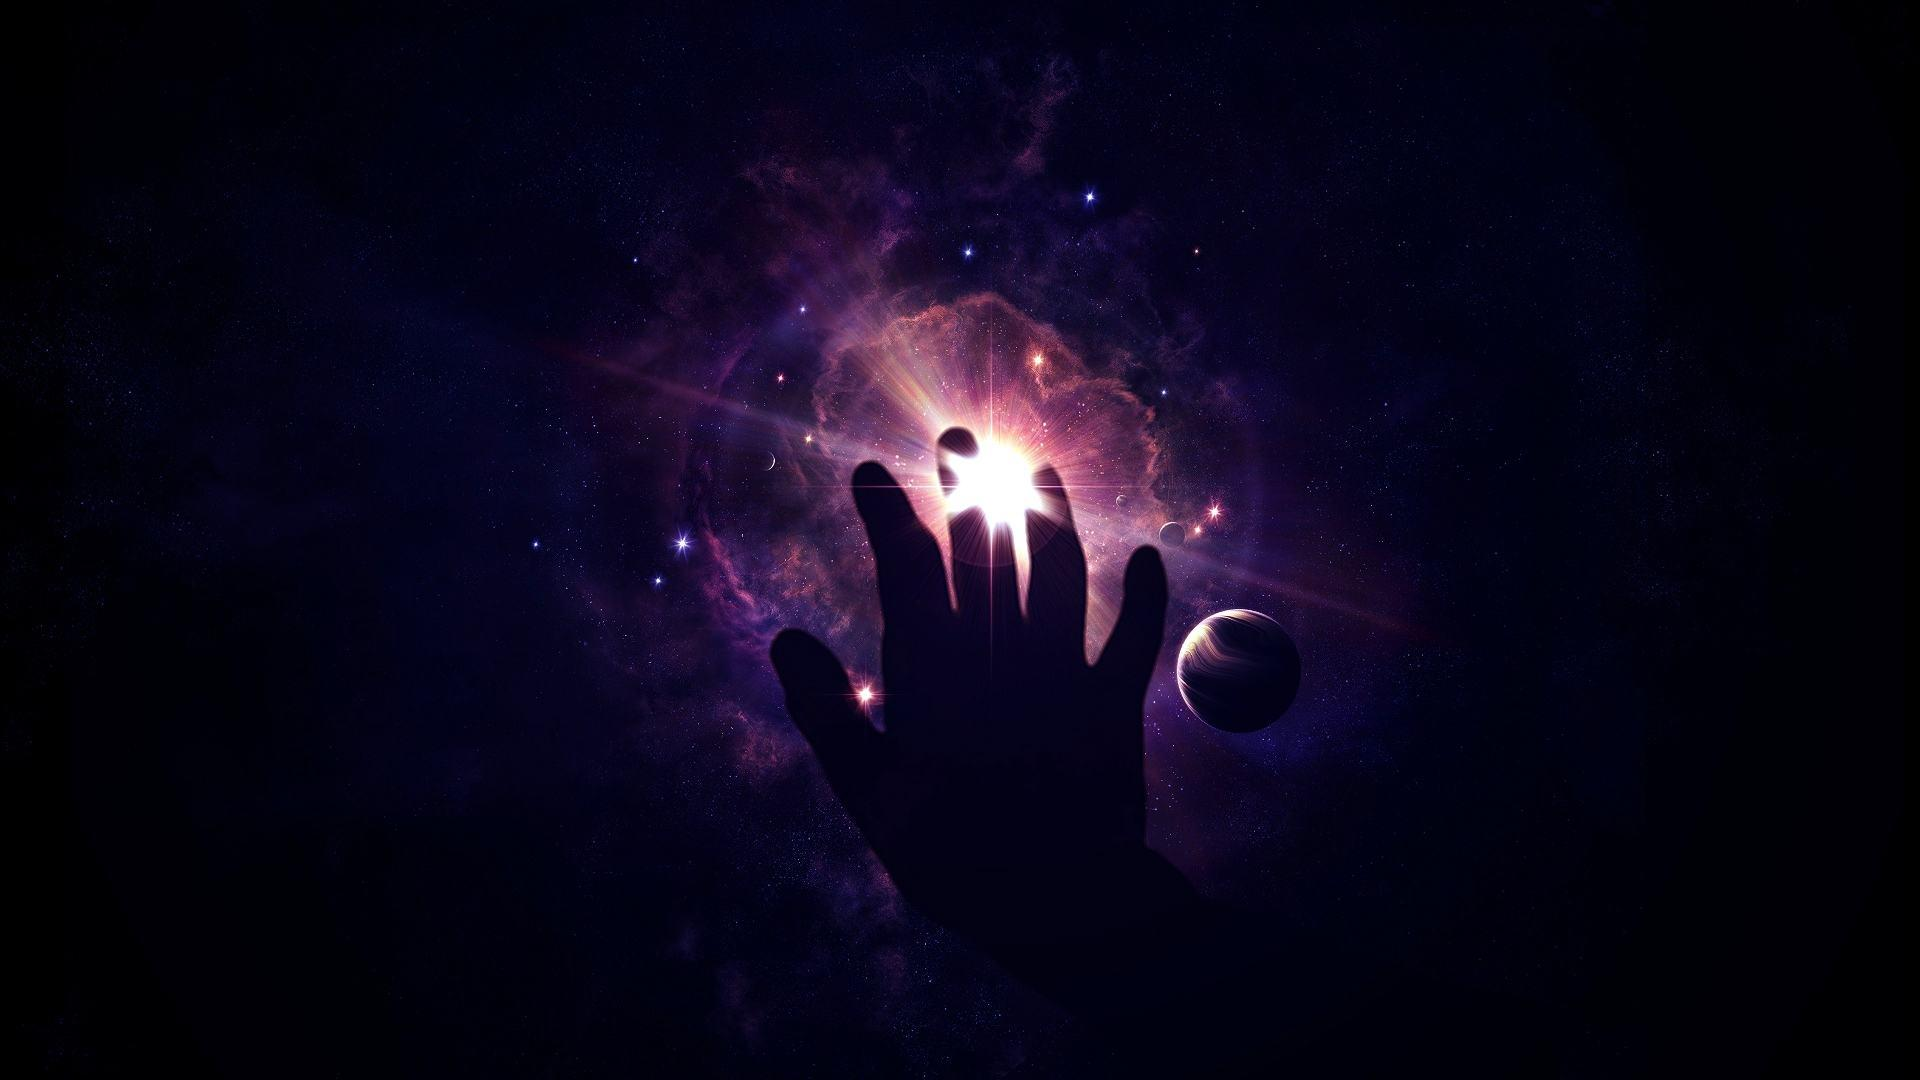 Wallpapers Original space star hand unreality Backgrounds Picture